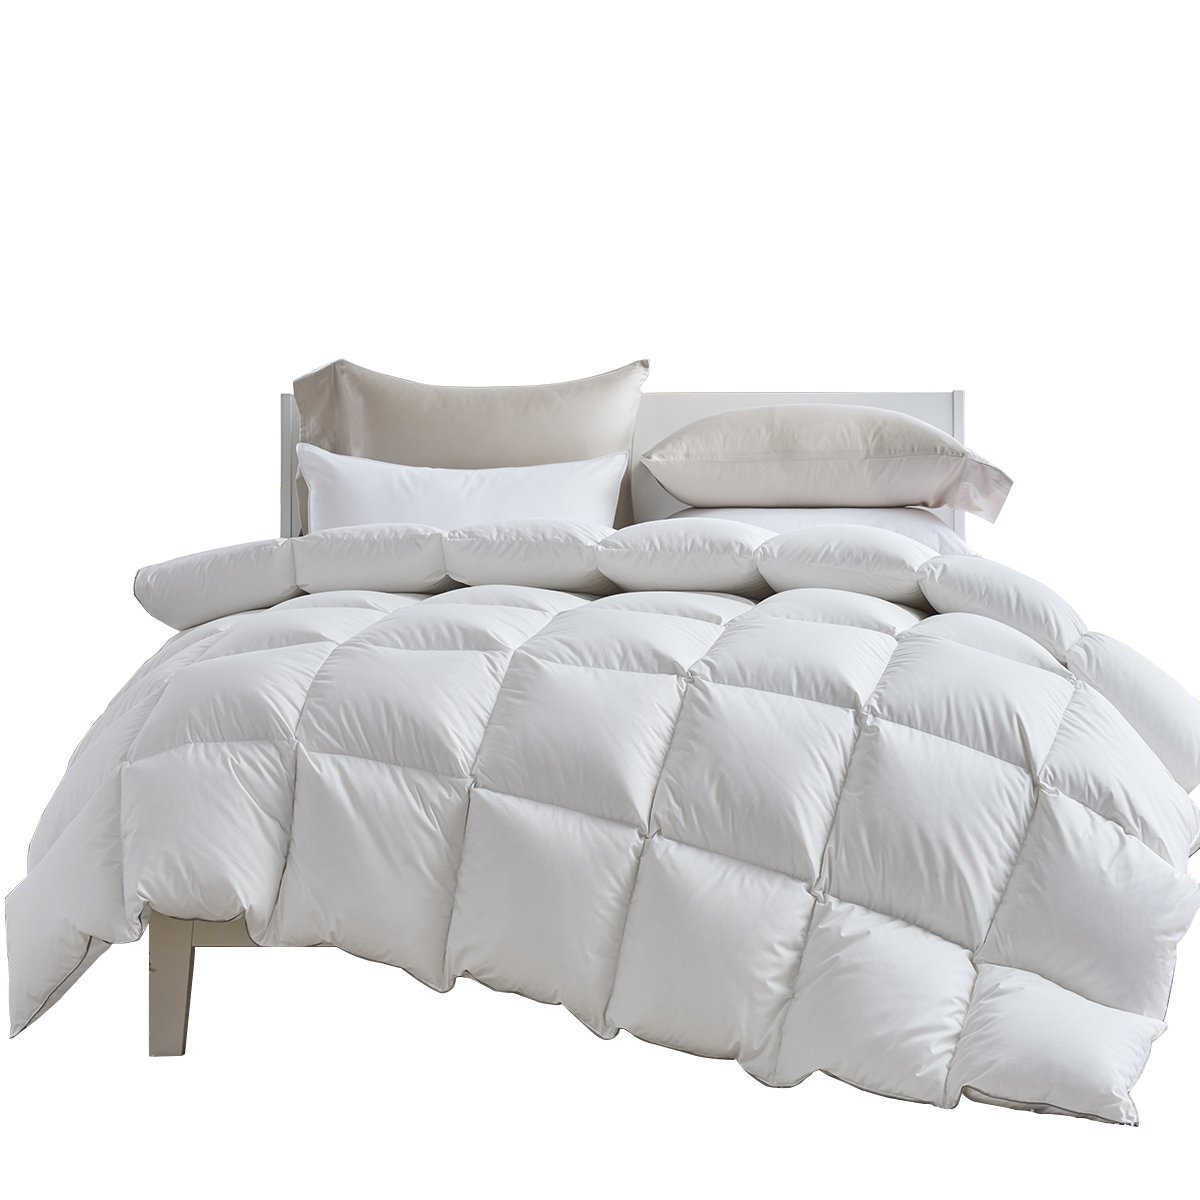 Coozii Down Comforter,All Season Goose Down Comforter,Queen Duvet Insert 1200 Thread Count 750+ Fill Power 100% Egyptian Cotton,White(90x90Inch)